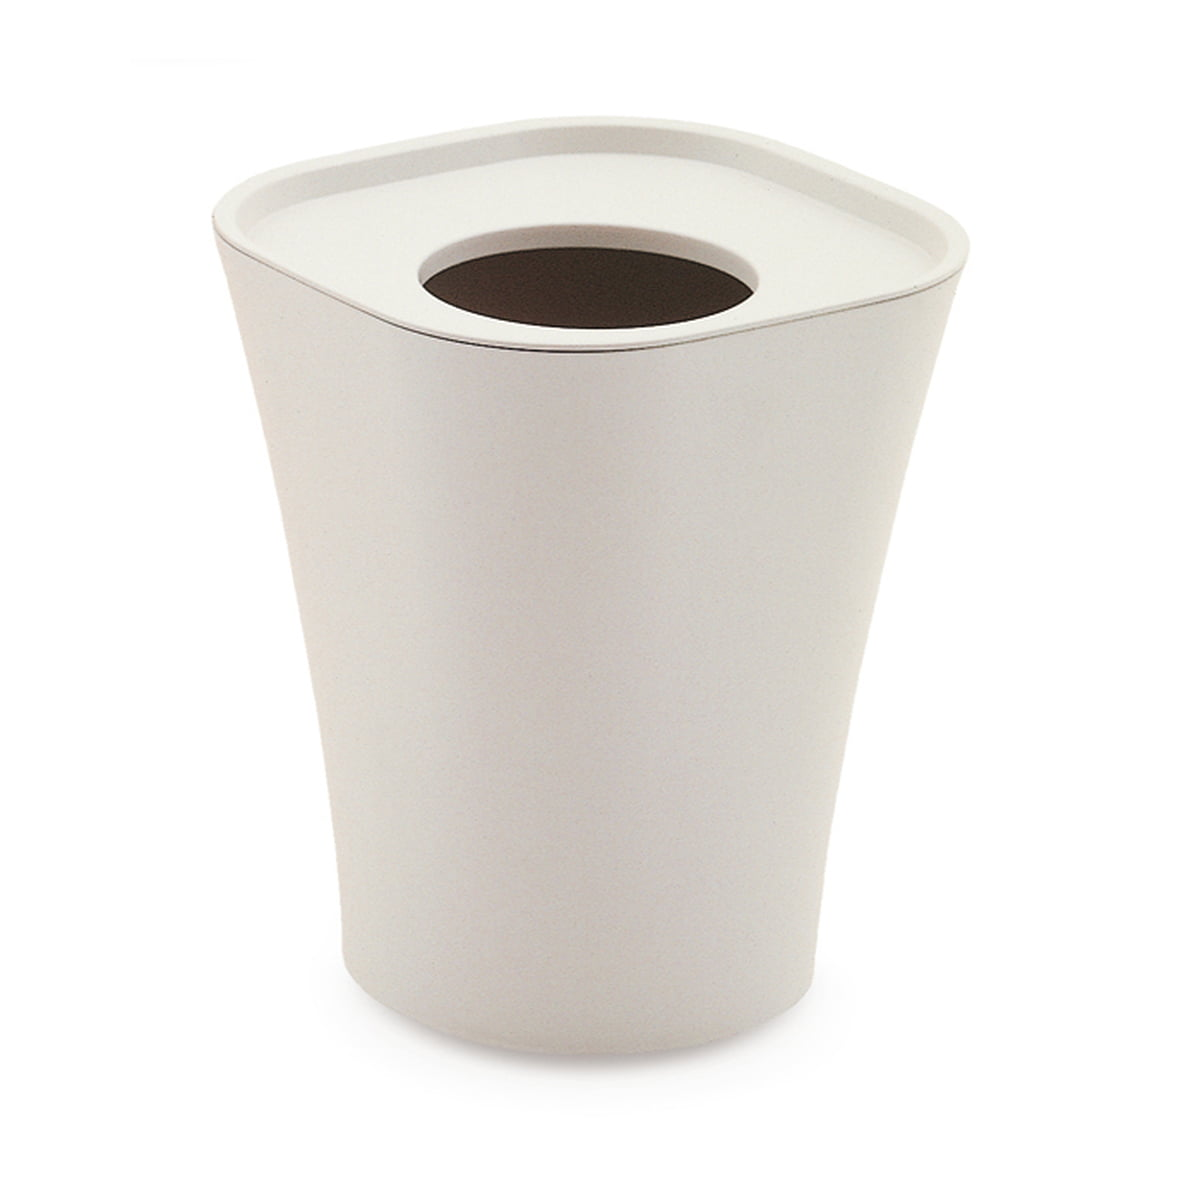 Wastepaper Basket Impressive Trash Wastepaper Basket  Magis  Connox Shop Design Inspiration